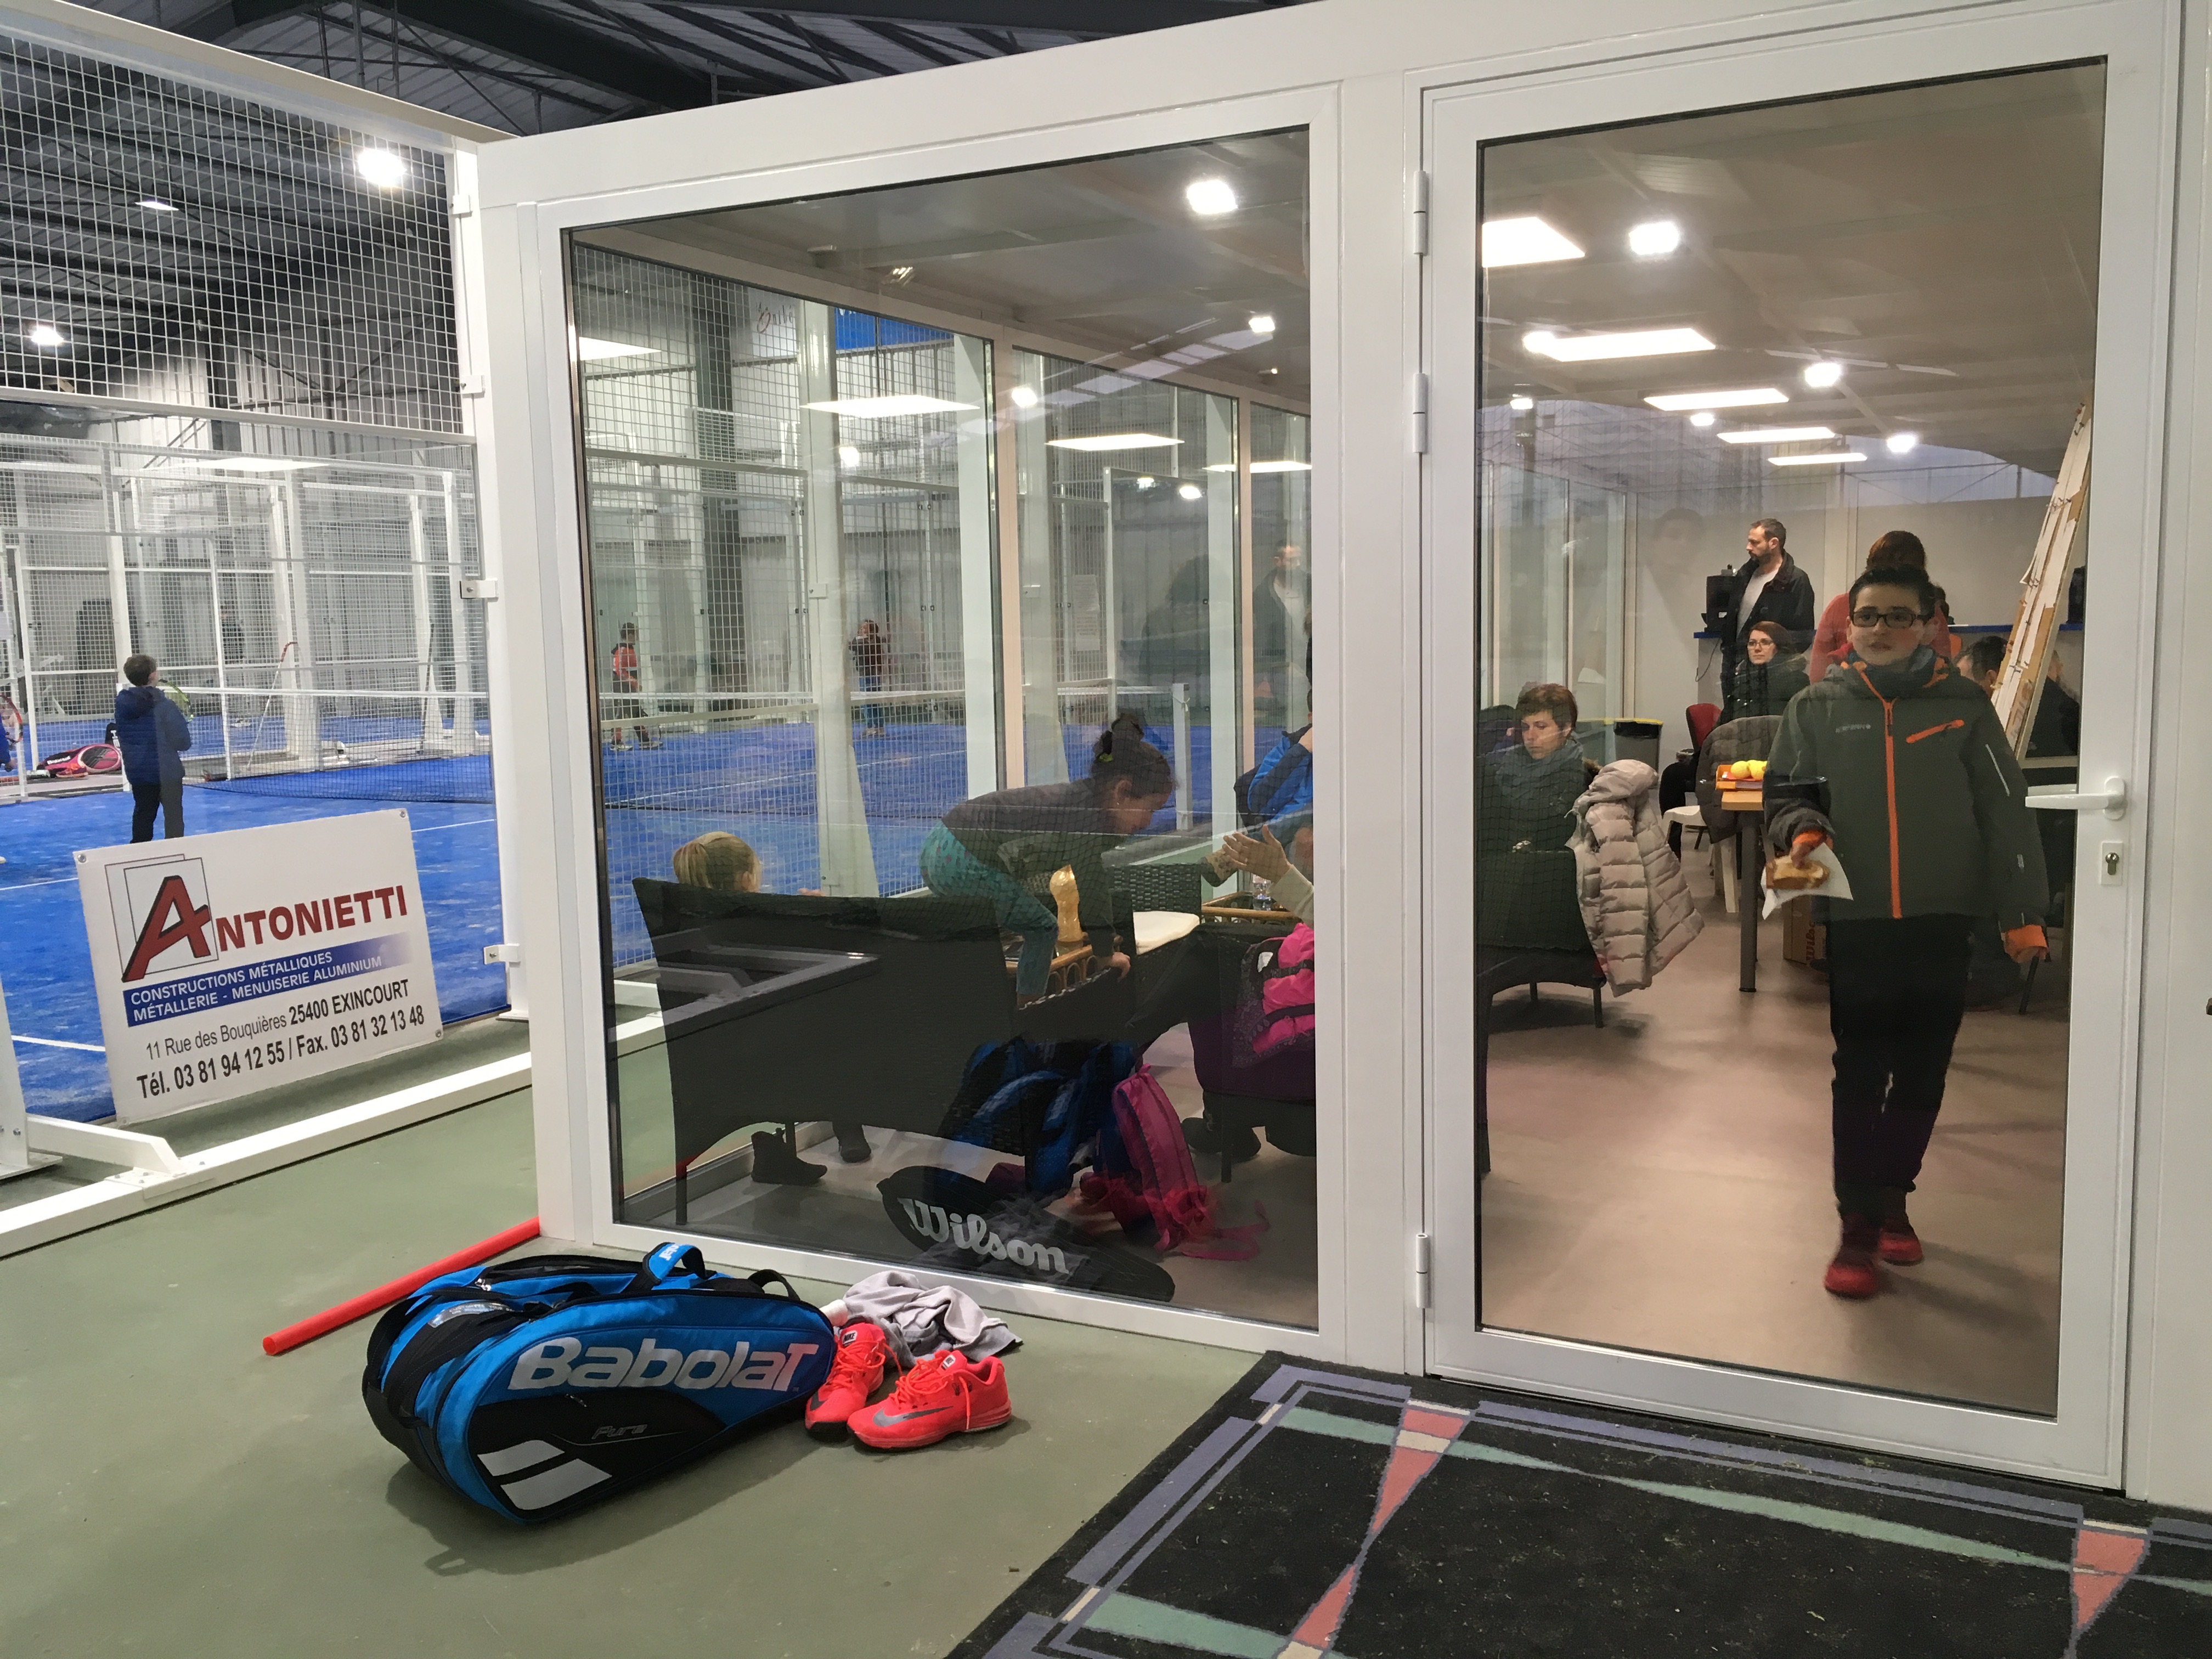 club-house-padel-monbéliard